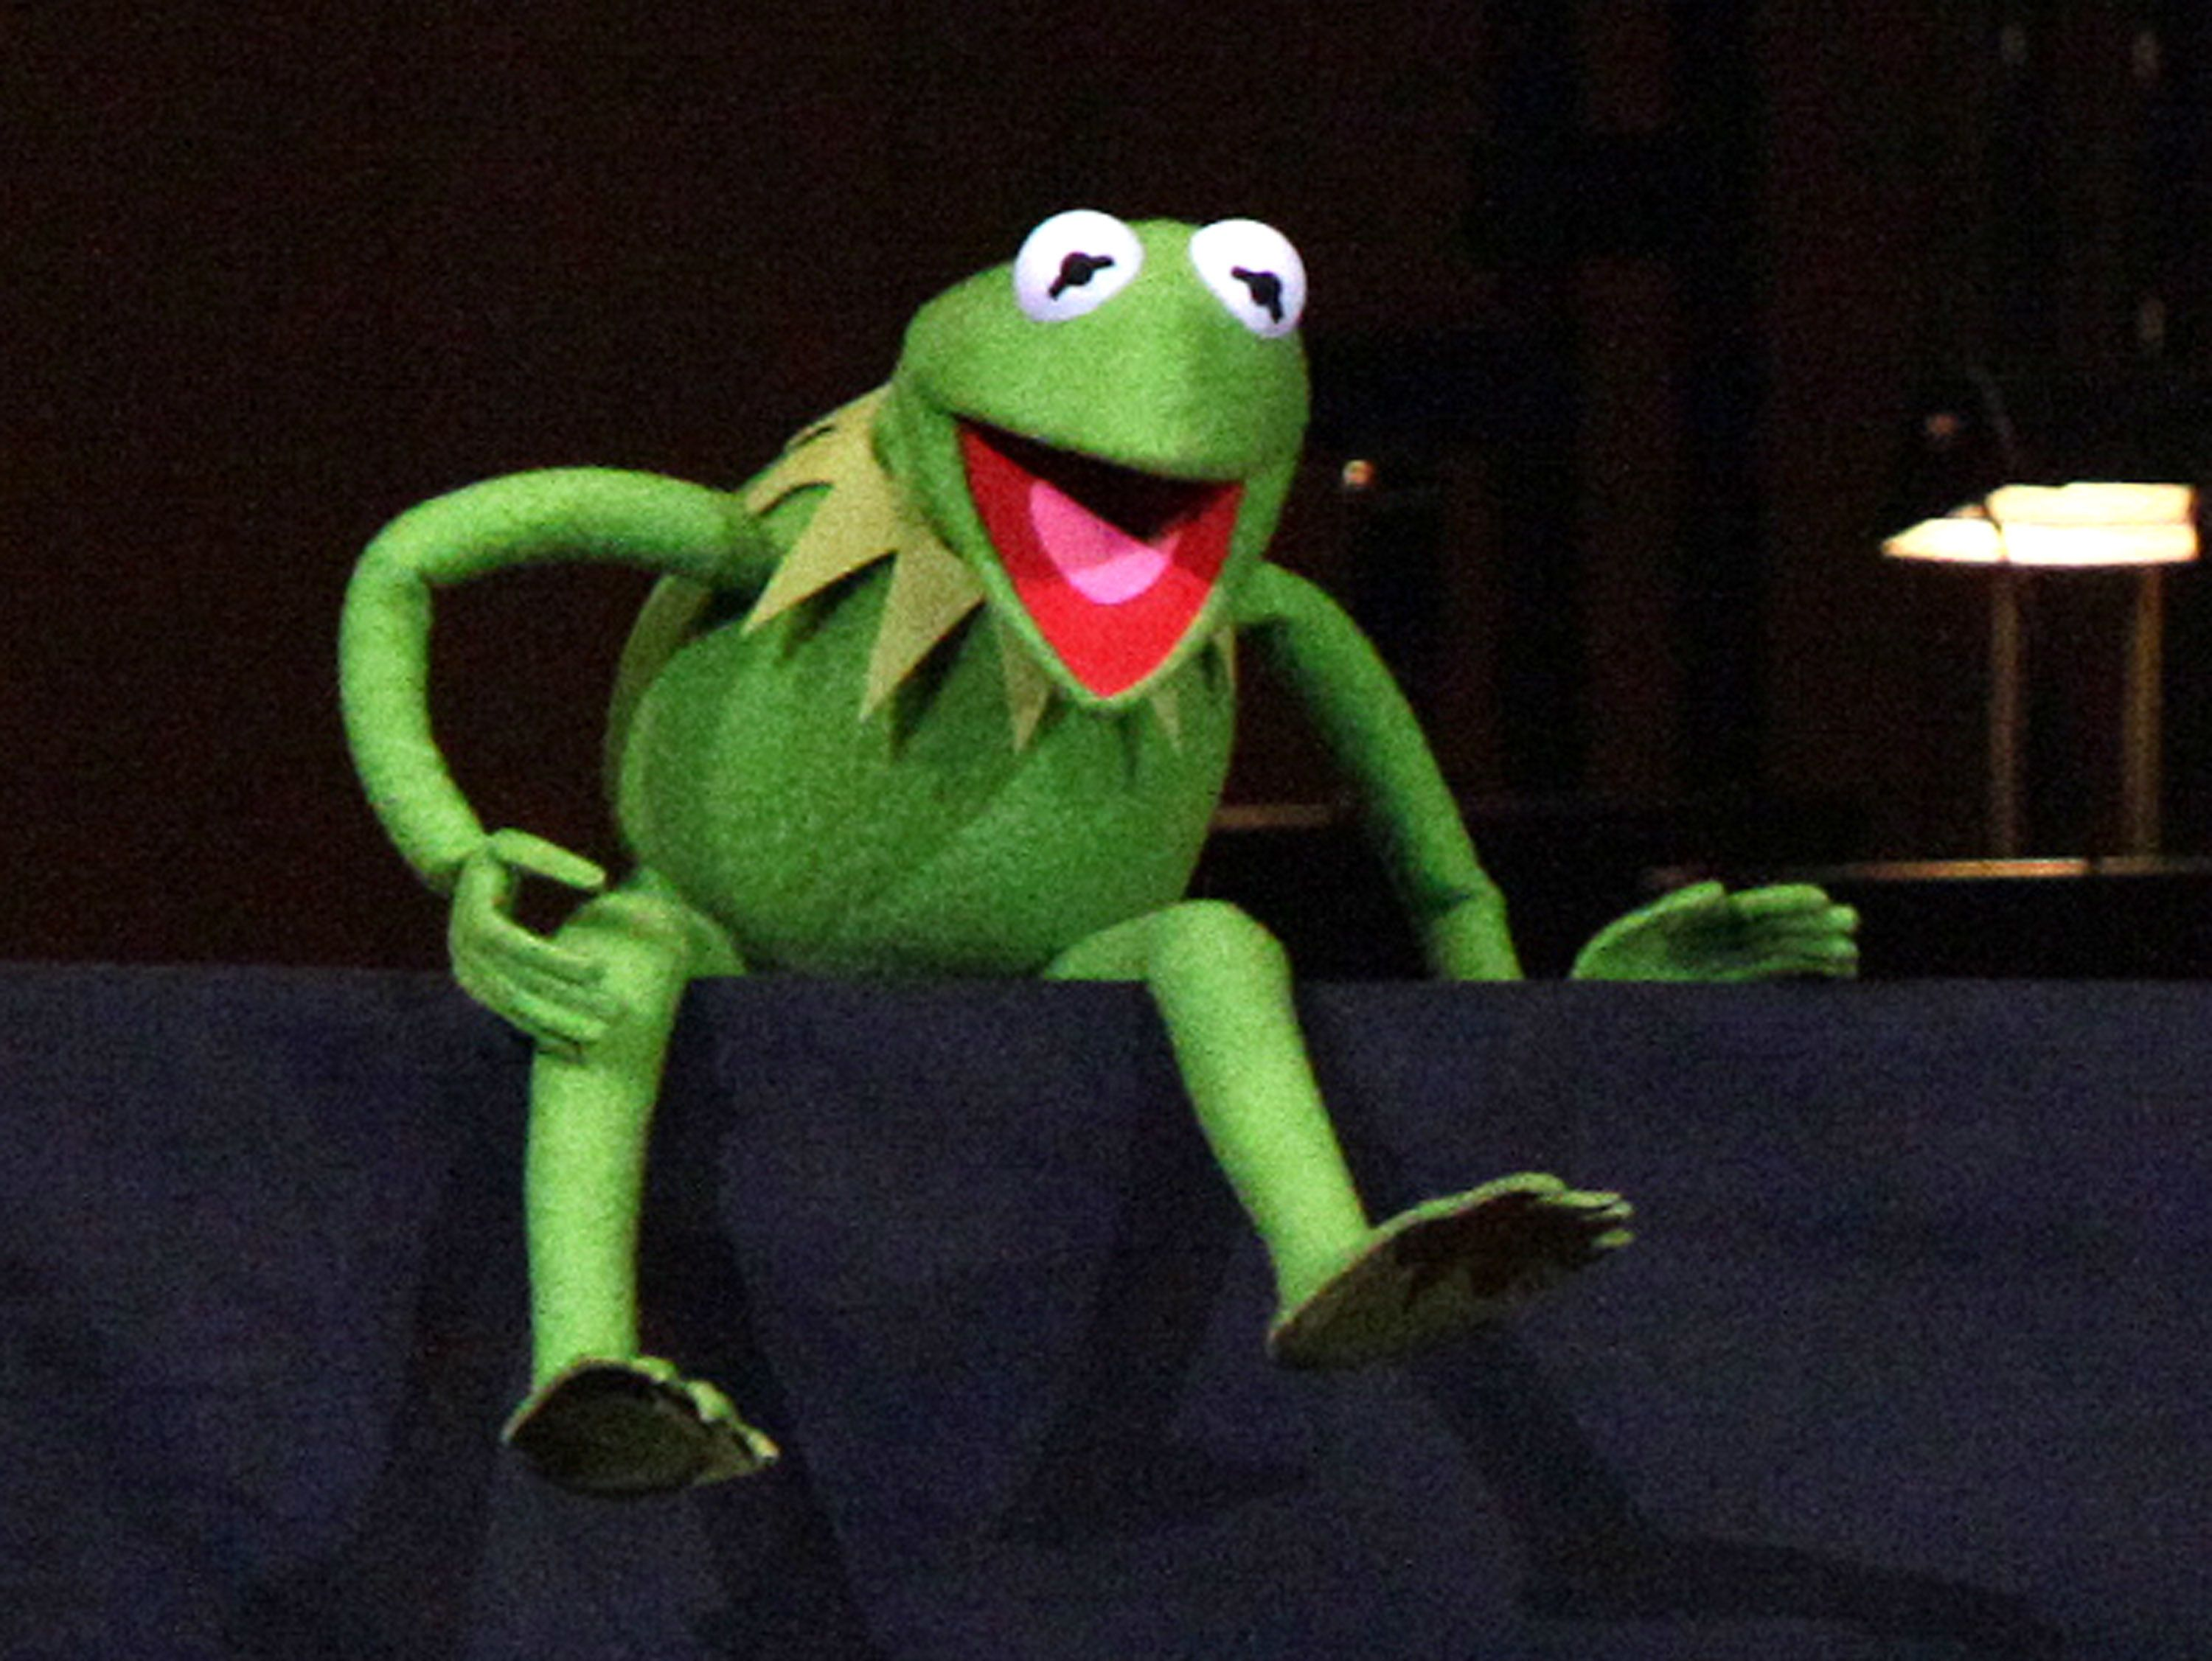 NEW YORK, NY - APRIL 14:  Kermit the Frog performs during the The New York Pops Present 'Jim Henson's Musical World' at Carnegie Hall on April 14, 2012 in New York City.  (Photo by Paul Zimmerman/Getty Images)